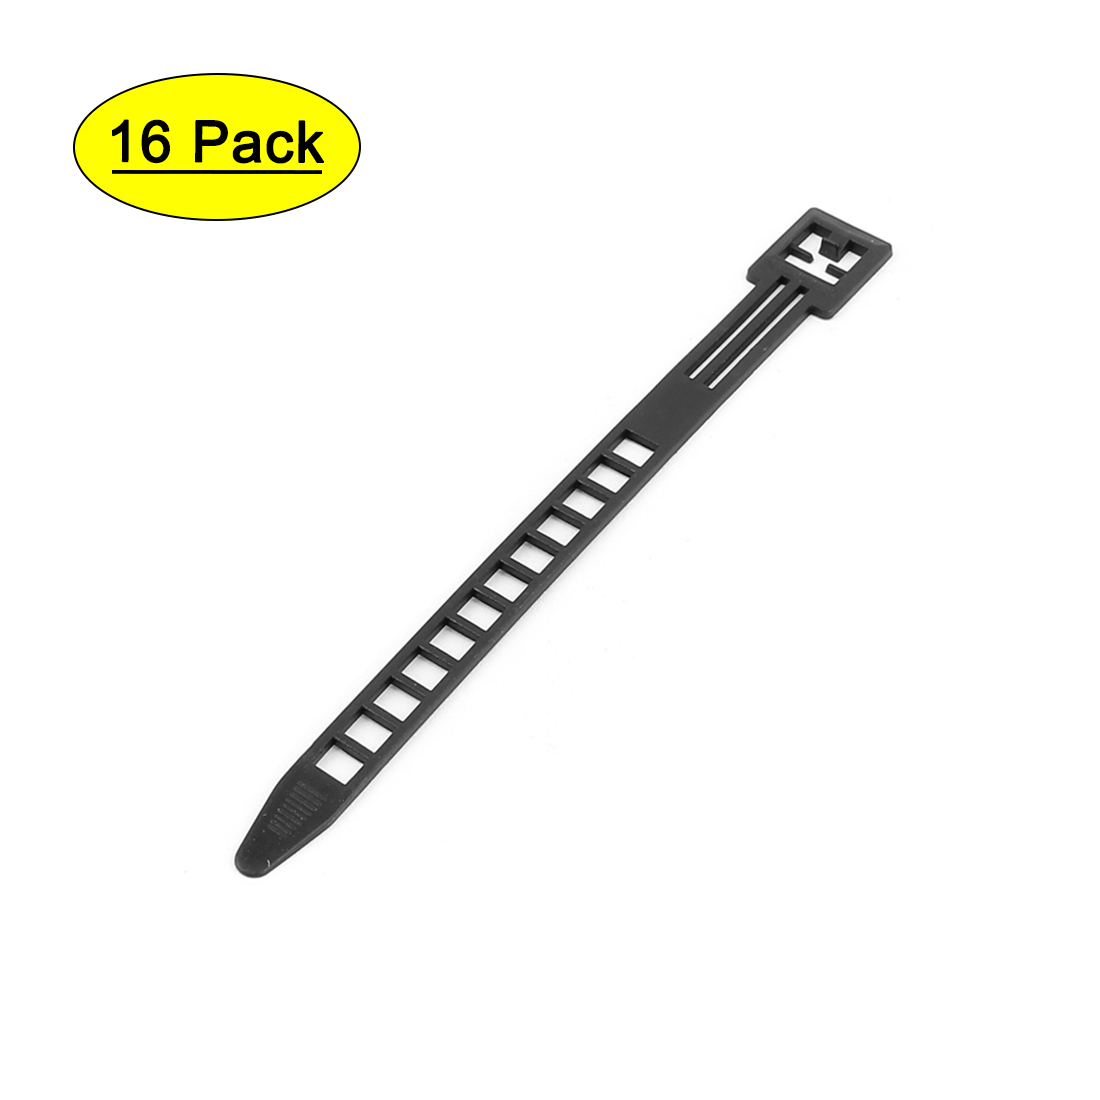 16pcs 140mm Nylon Adjustable Self-Locking Network Cable Cord Wire Zip Ties Strap